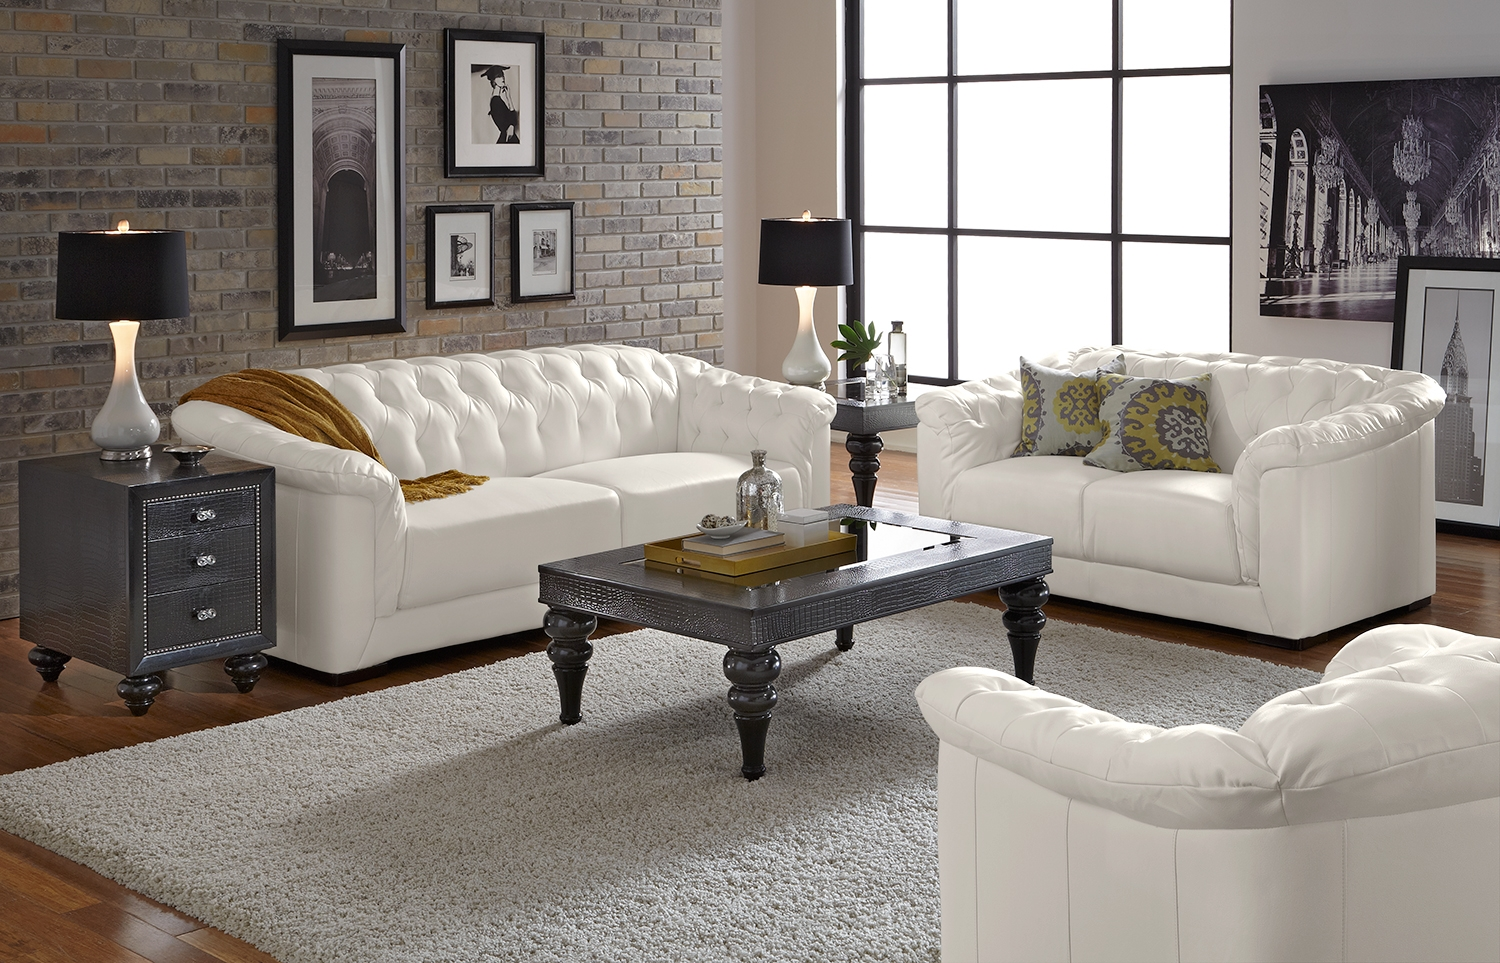 Awasome-Tufted-Leather-Sofa